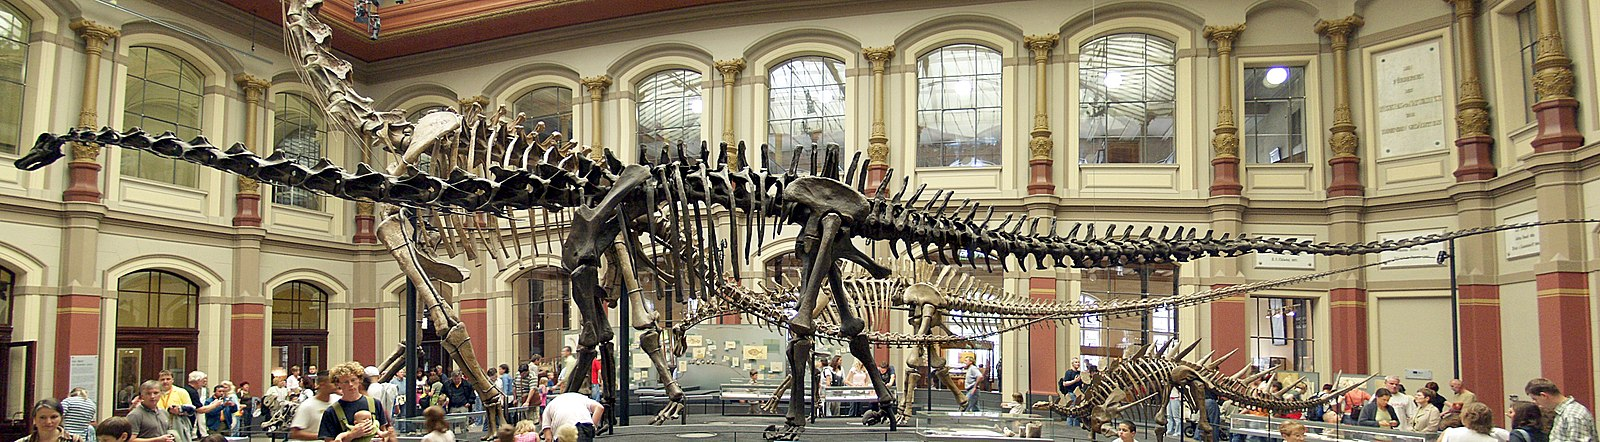 Fossilized skeleton of Diplodocus carnegii, showing an extreme example of the backbone that characterizes the vertebrates. Naturkundemuseum Berlin - Dinosaurierhalle.jpg